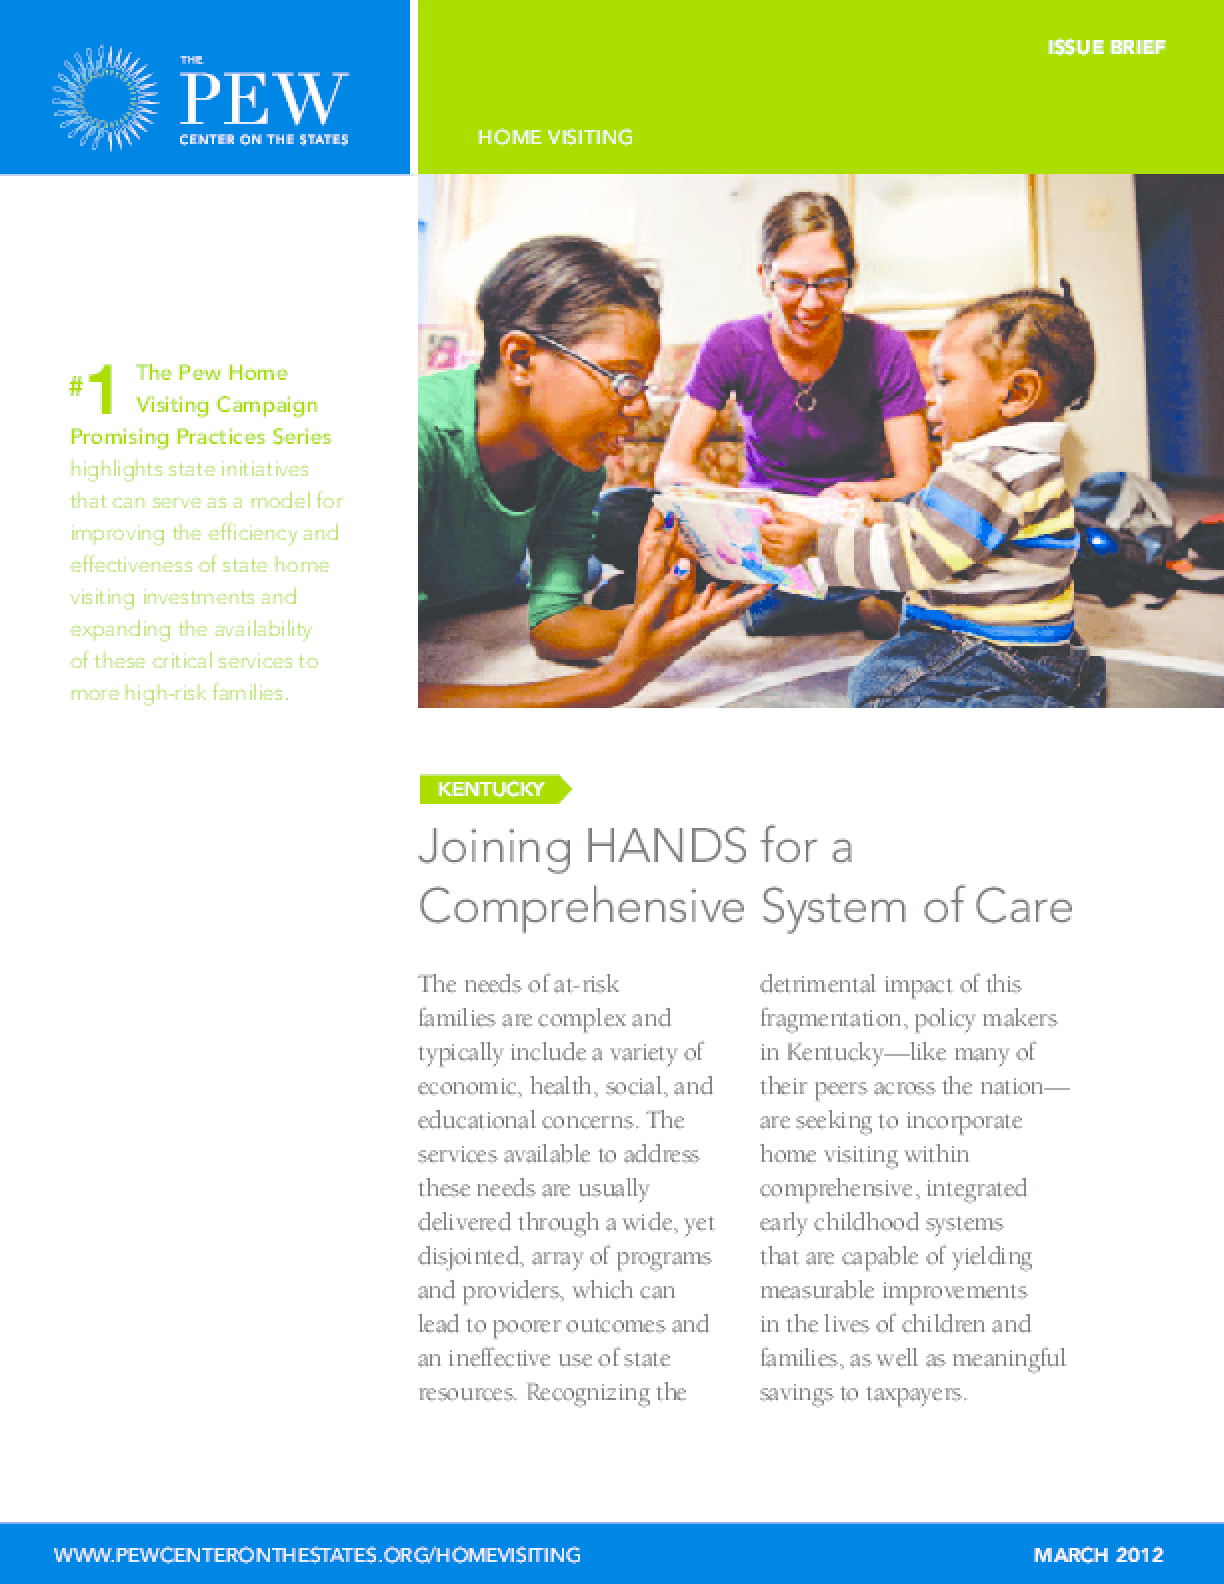 Joining HANDS for a Comprehensive System of Care